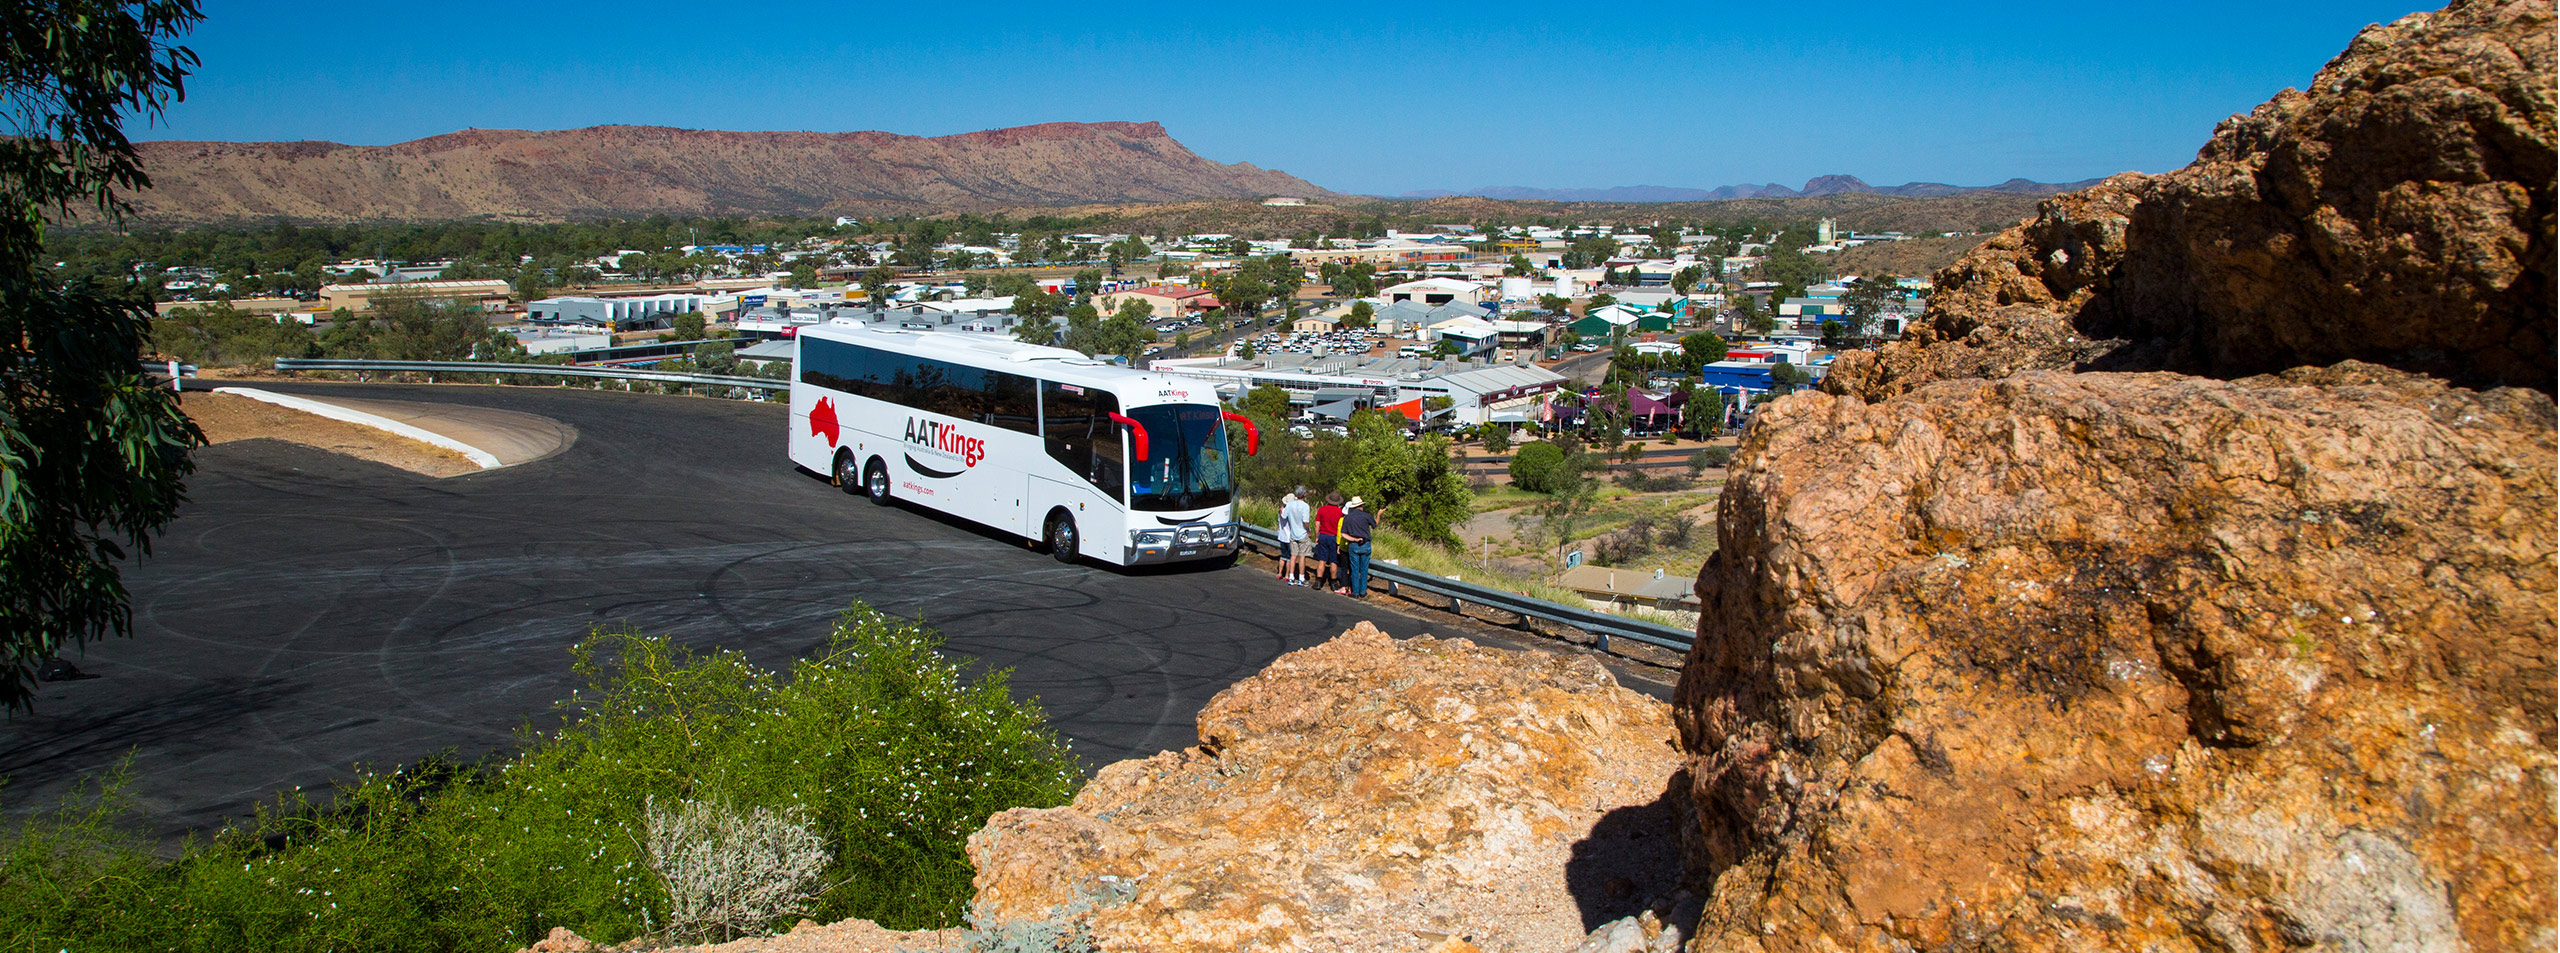 AAT Kings Coach at Alice Springs